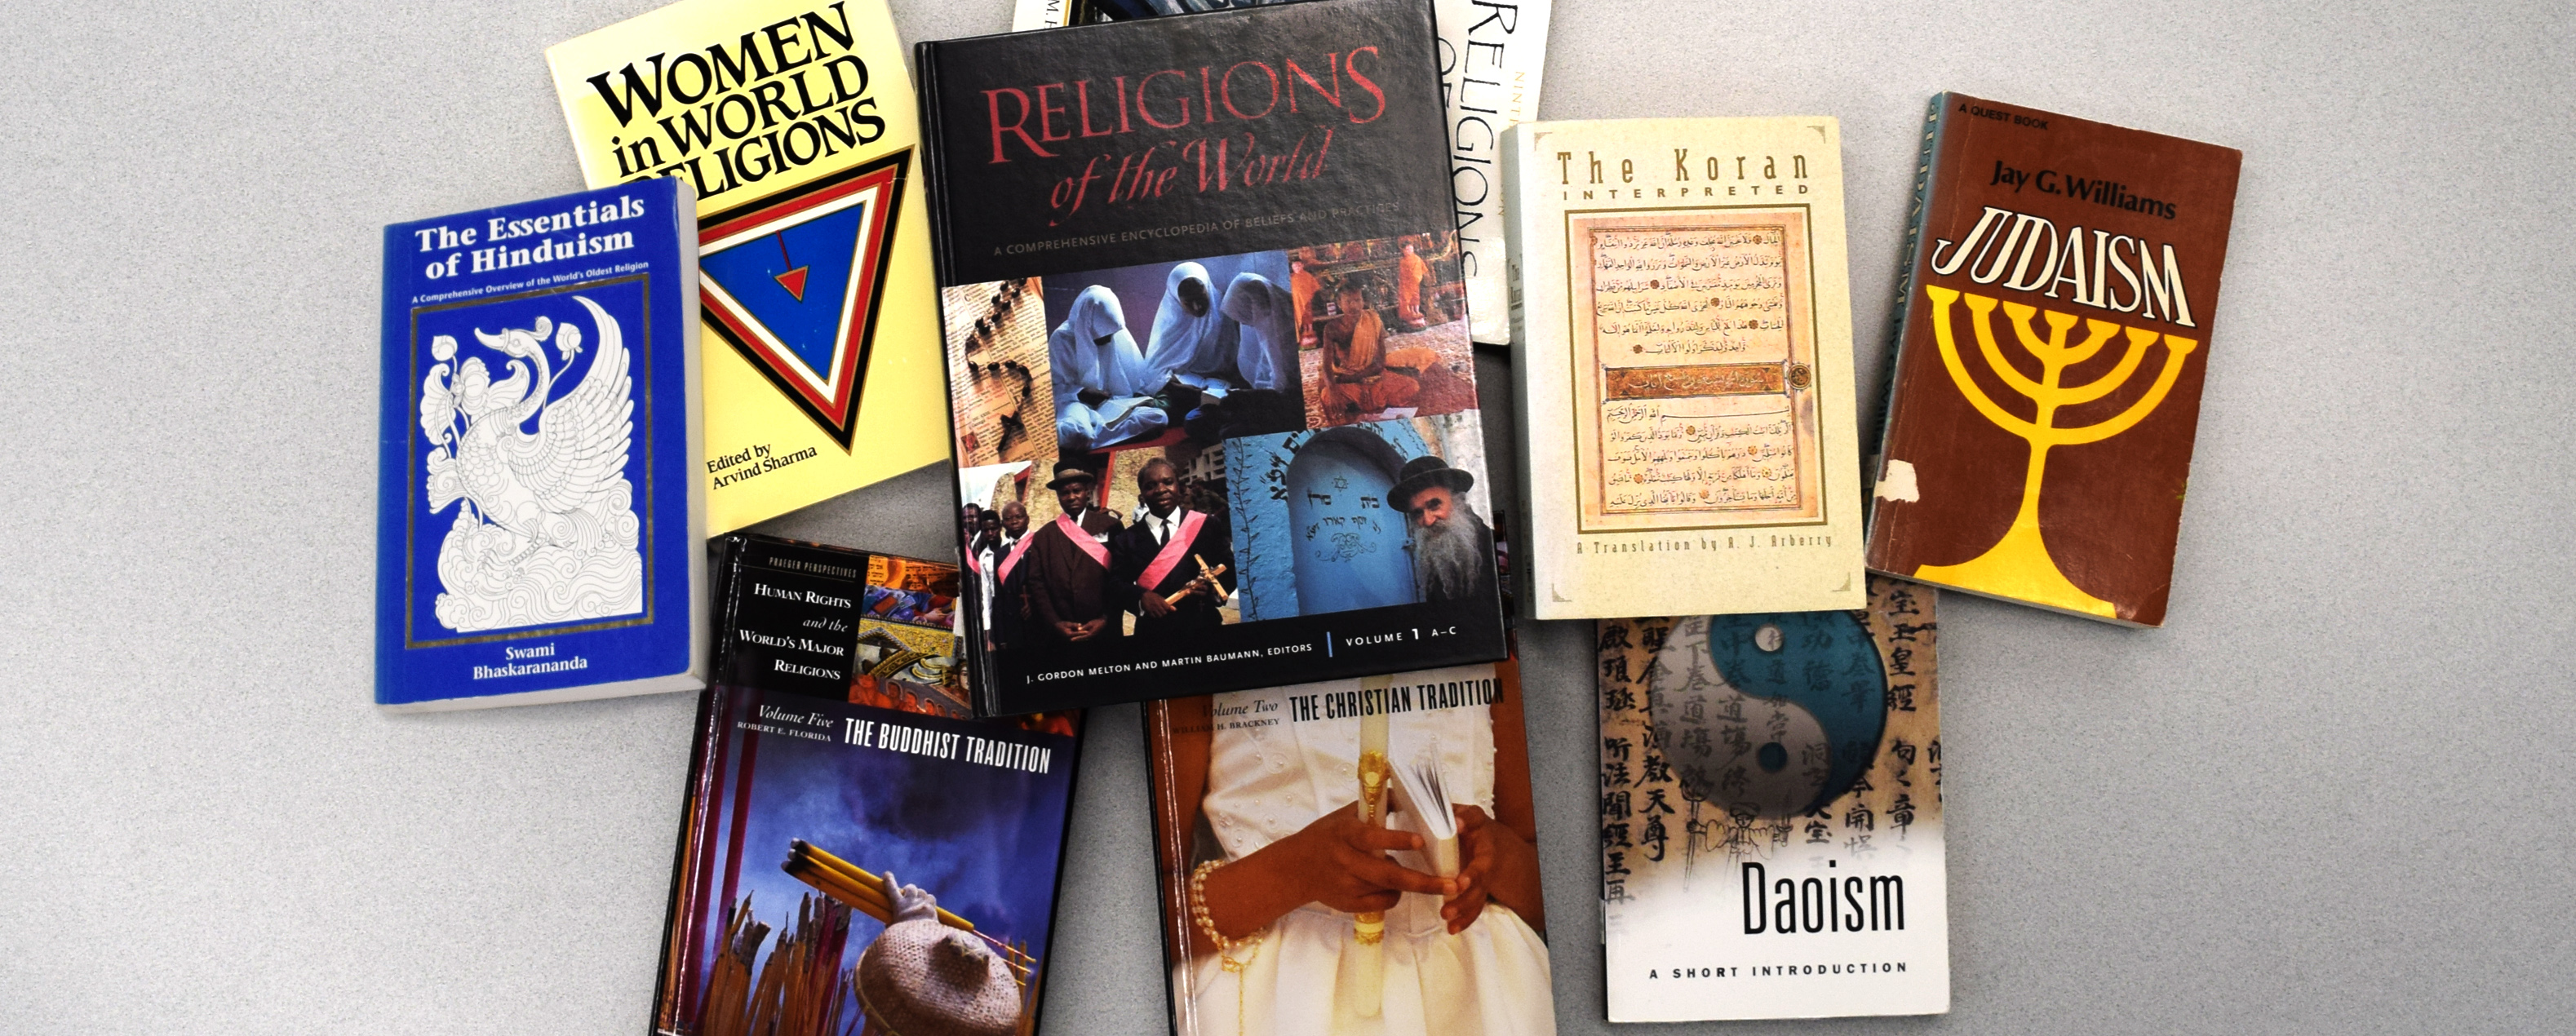 Nine books on various world religions spread out on a table top.